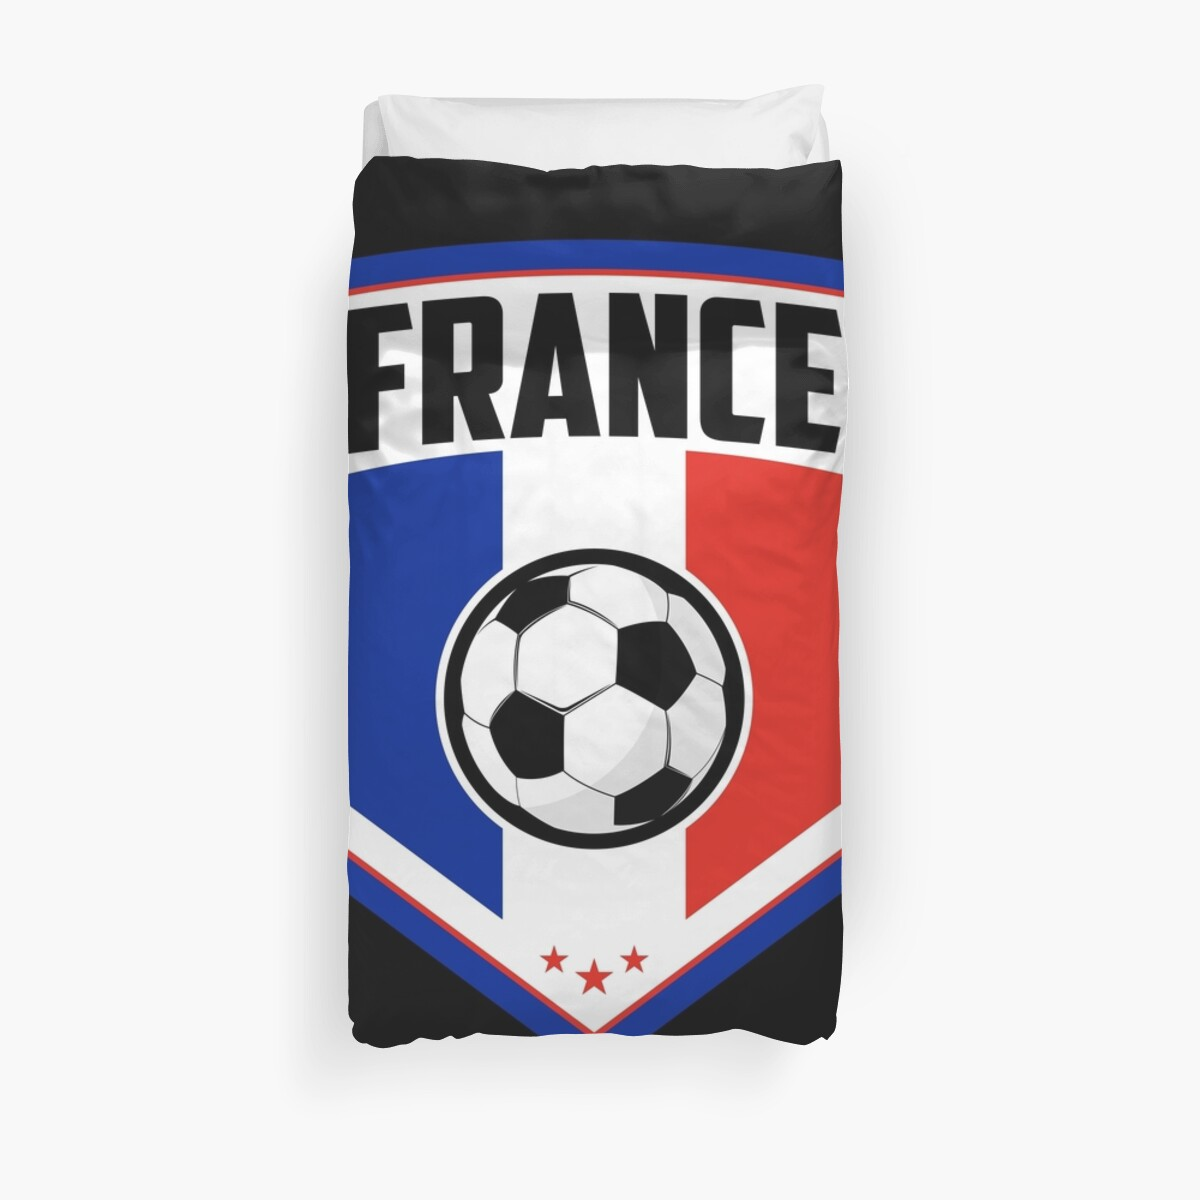 France Flag France Jersey World Cup 2018 Soccer Player Gift Soccer Coach Gift Team Soccer Gifts Soccer Gifts For Her Soccer Shirts